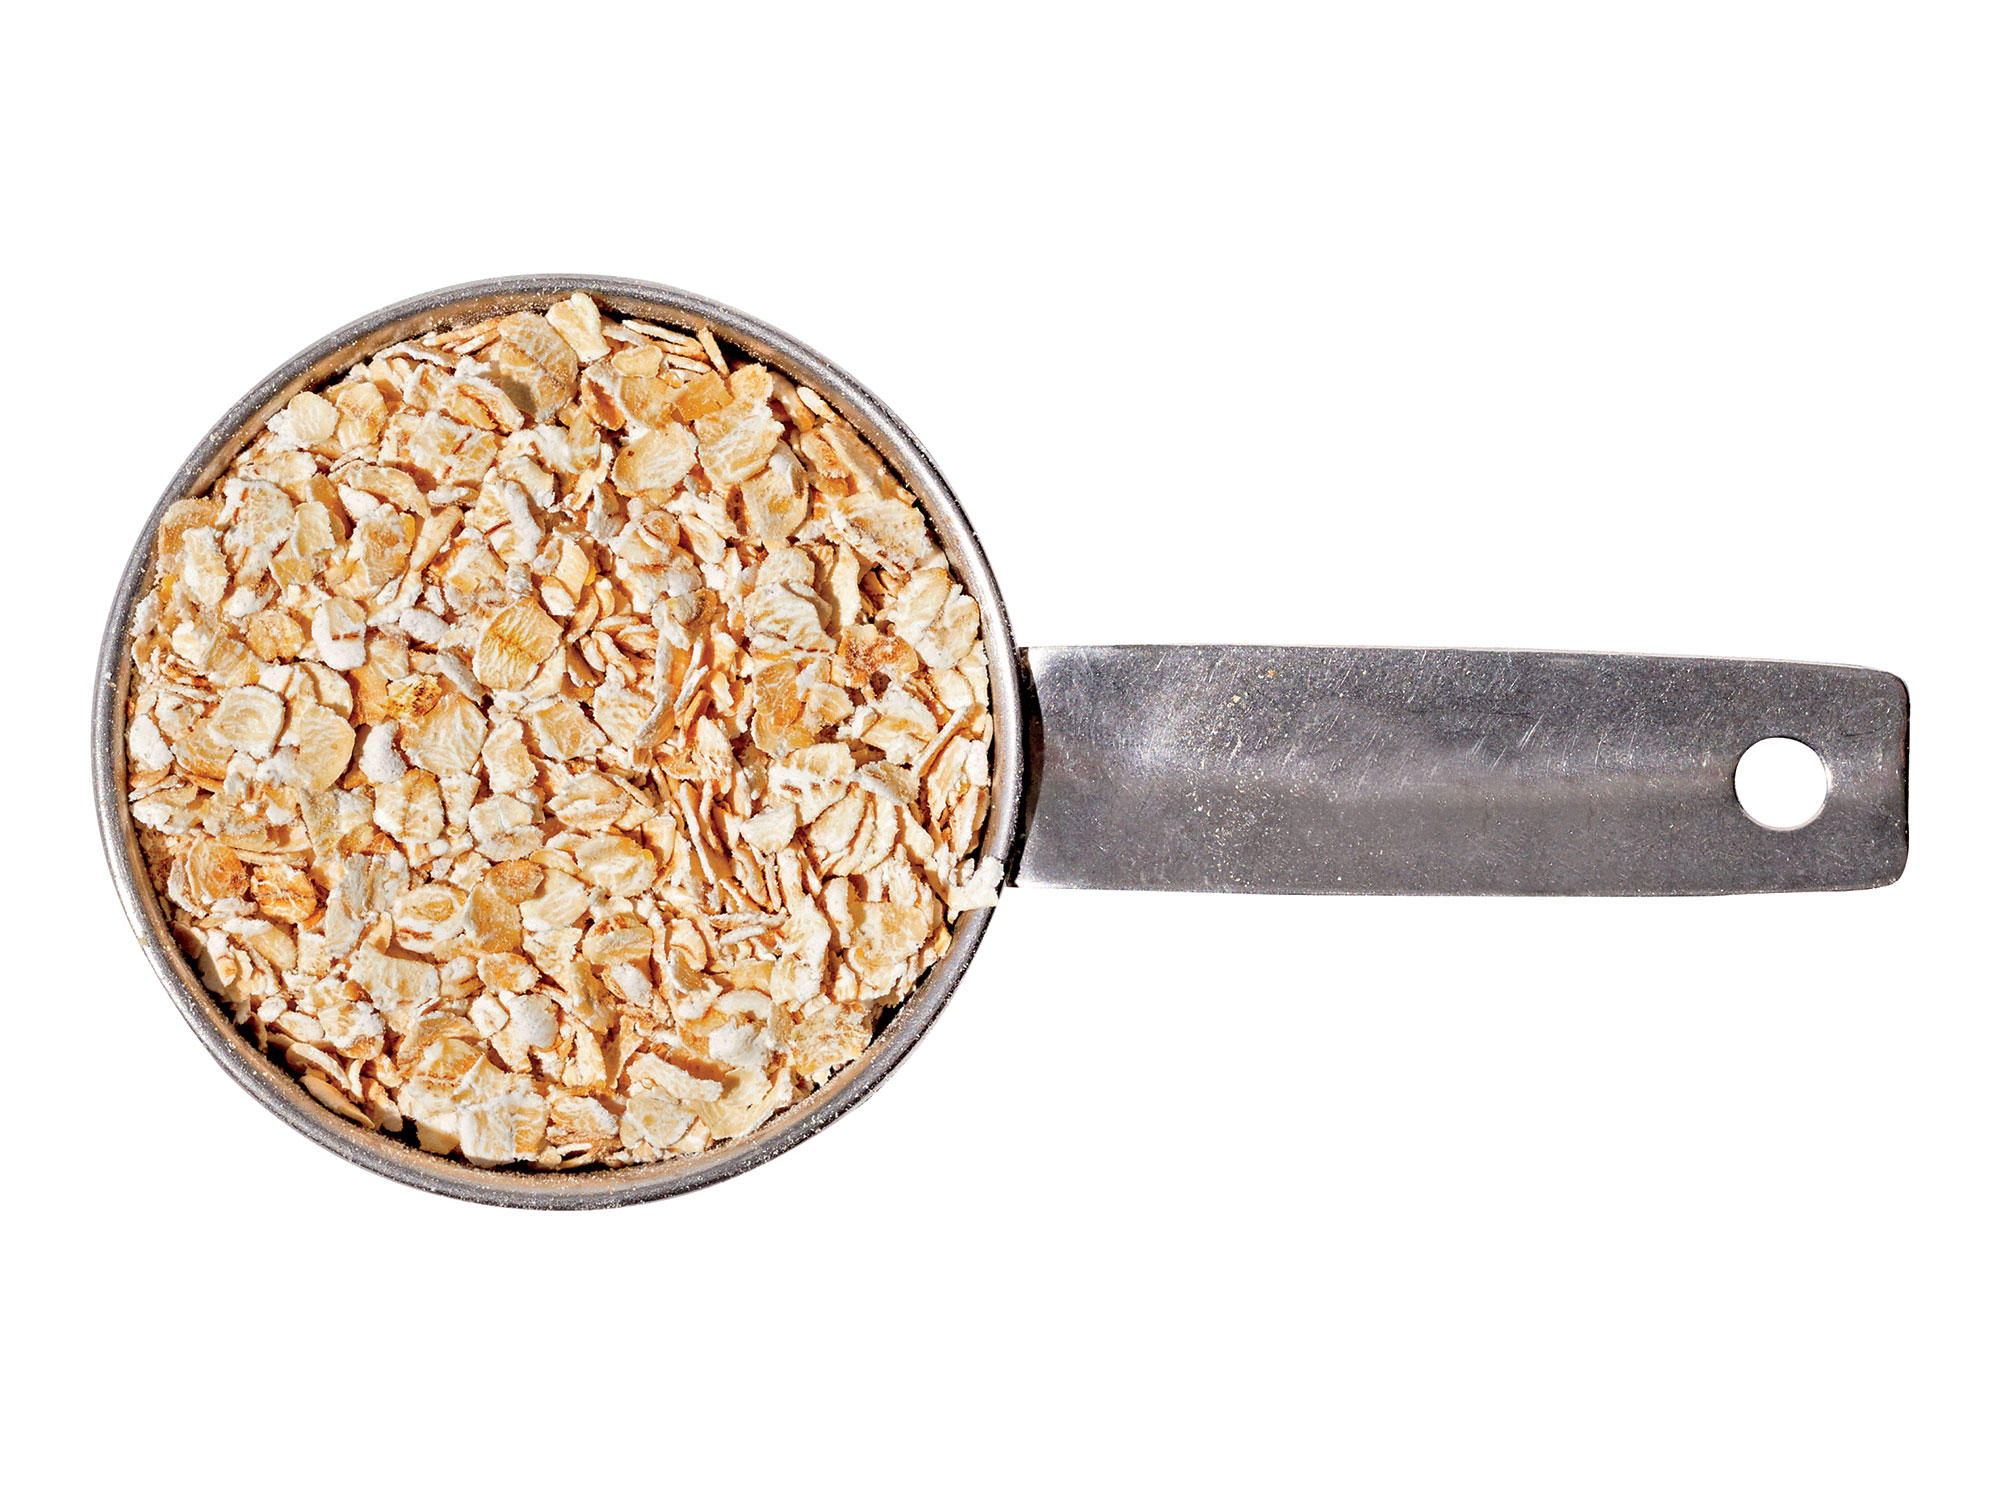 Quick Cooking Oats